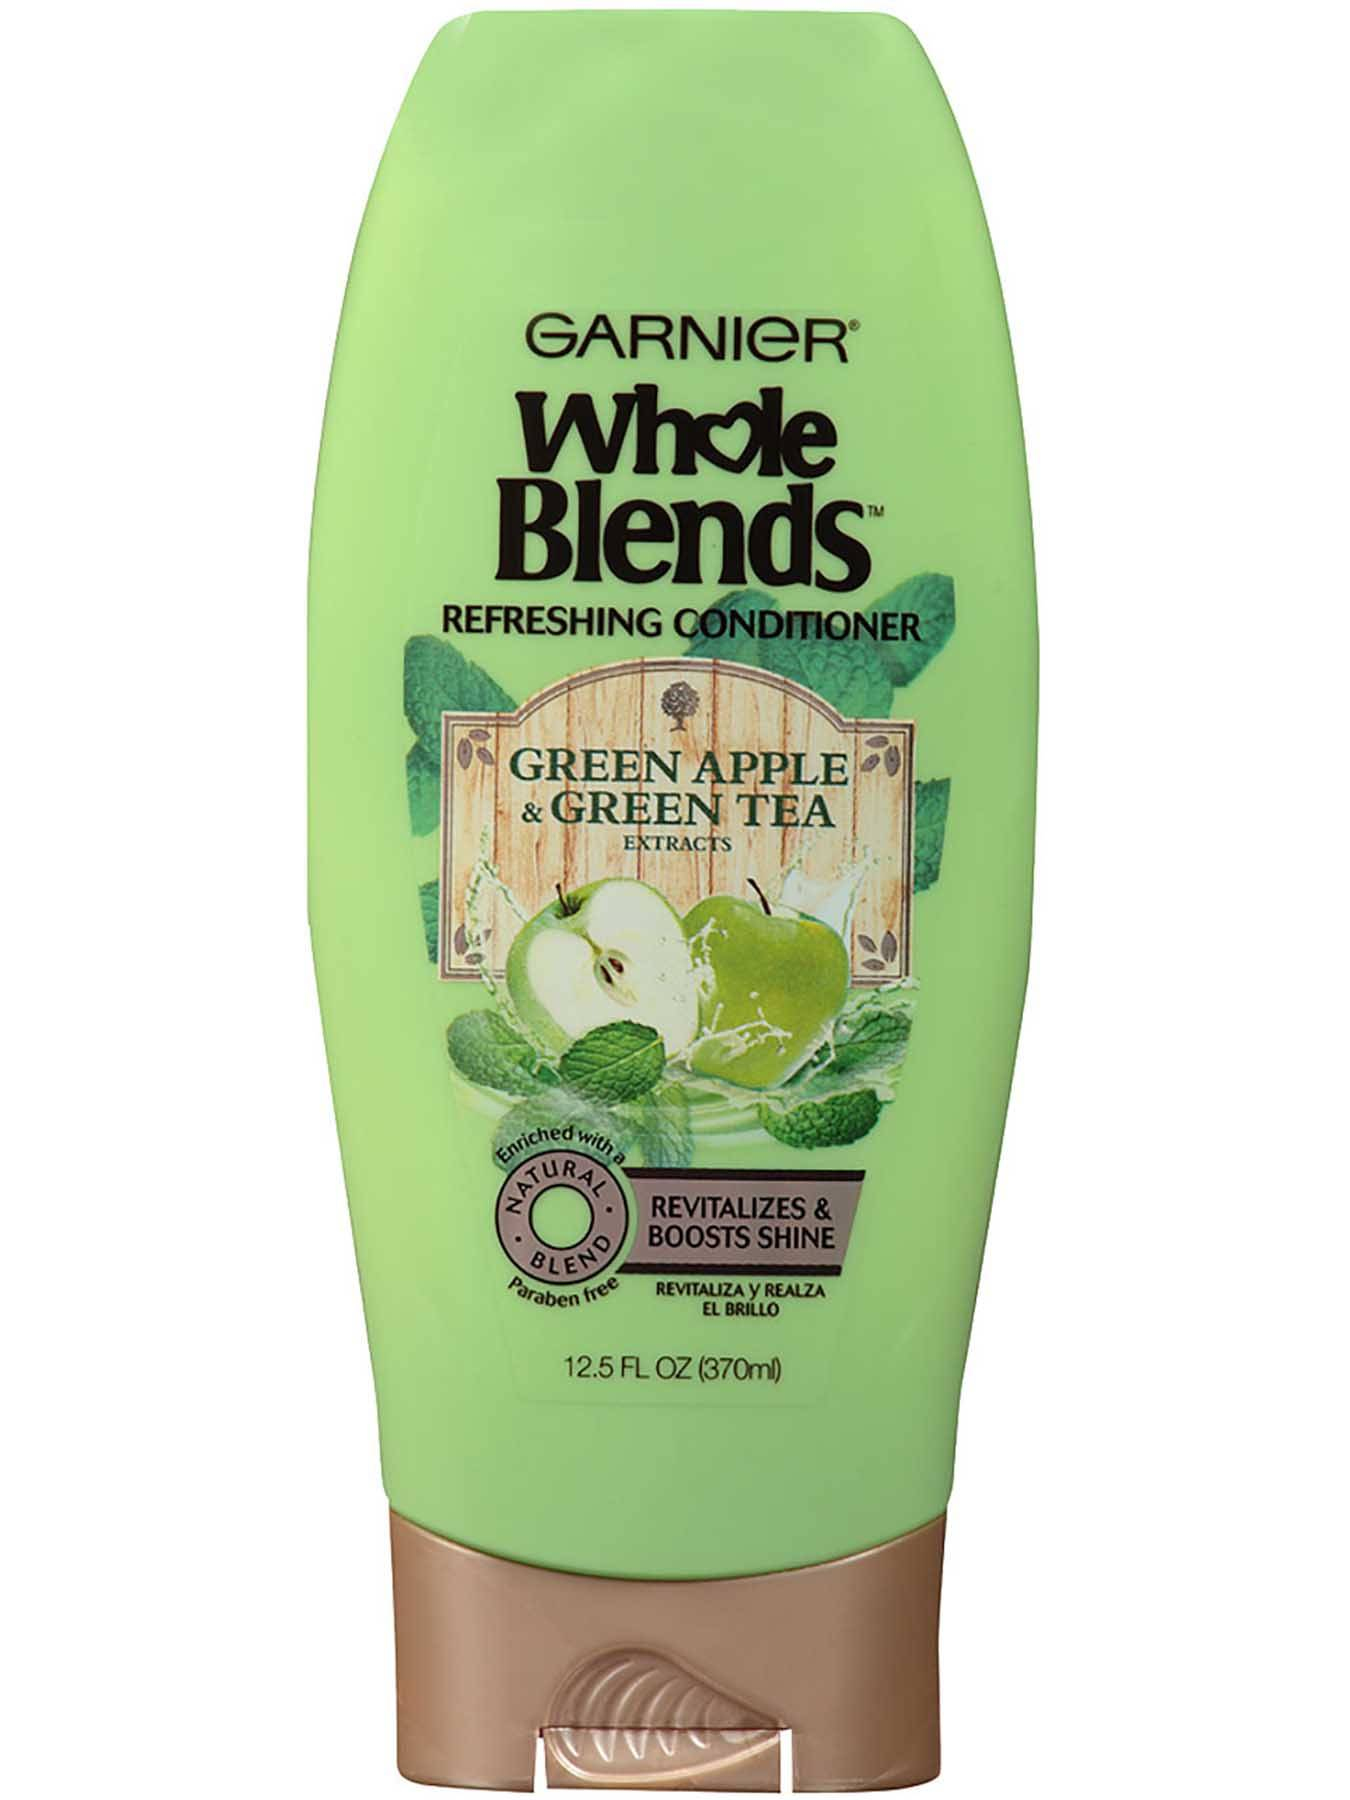 Garnier Whole Blends Refreshing Conditioner Green Apple Green Tea Extracts Front Of Bottle